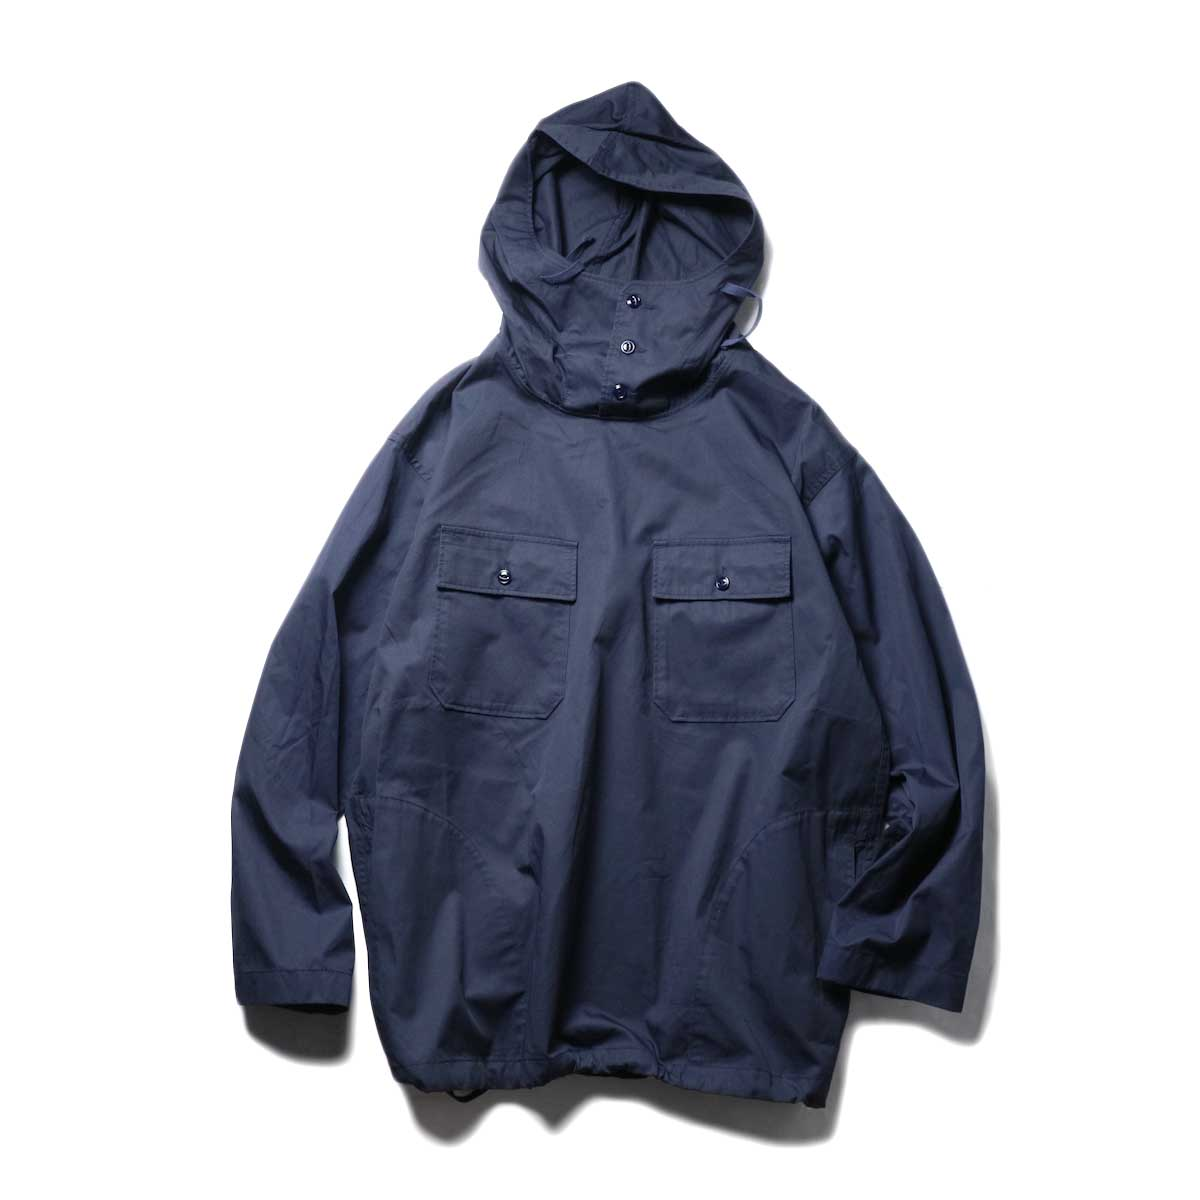 Engineered Garments / Cagoule Shirt -High Count Twill (Dk.Navy)正面